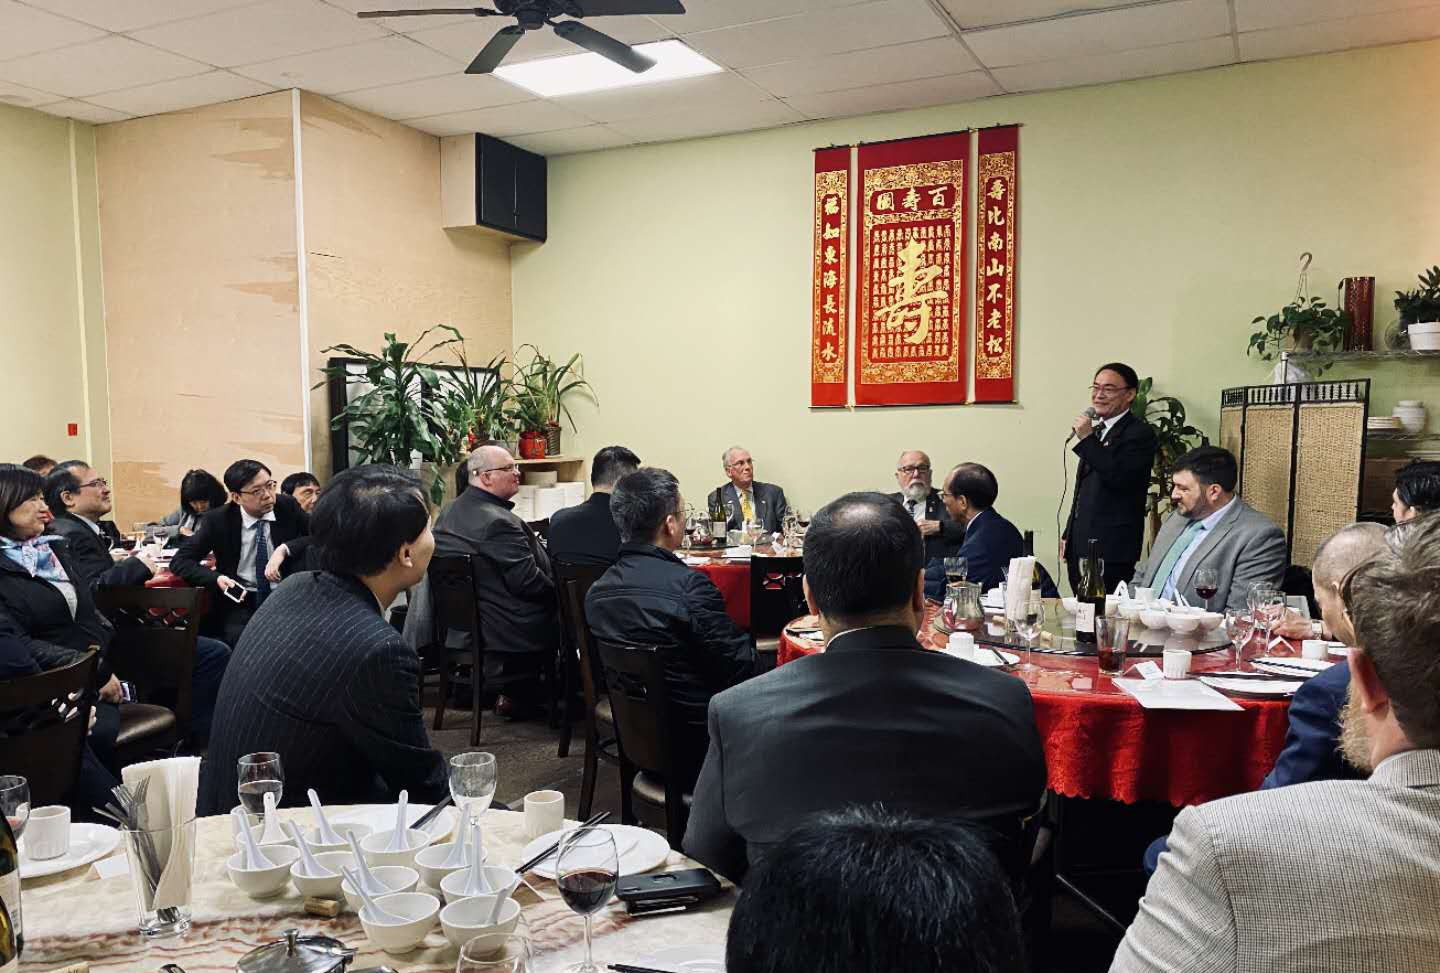 Consul General Wang Donghua addresses the delegation from the Chinese Consulate, OCC Board members, distinguished Chinese Community leaders and other guests at the February 25 dinner to honor legislative board members Senator Arnie Roblan and Representative Jeff Barker for their many years of service to OCC